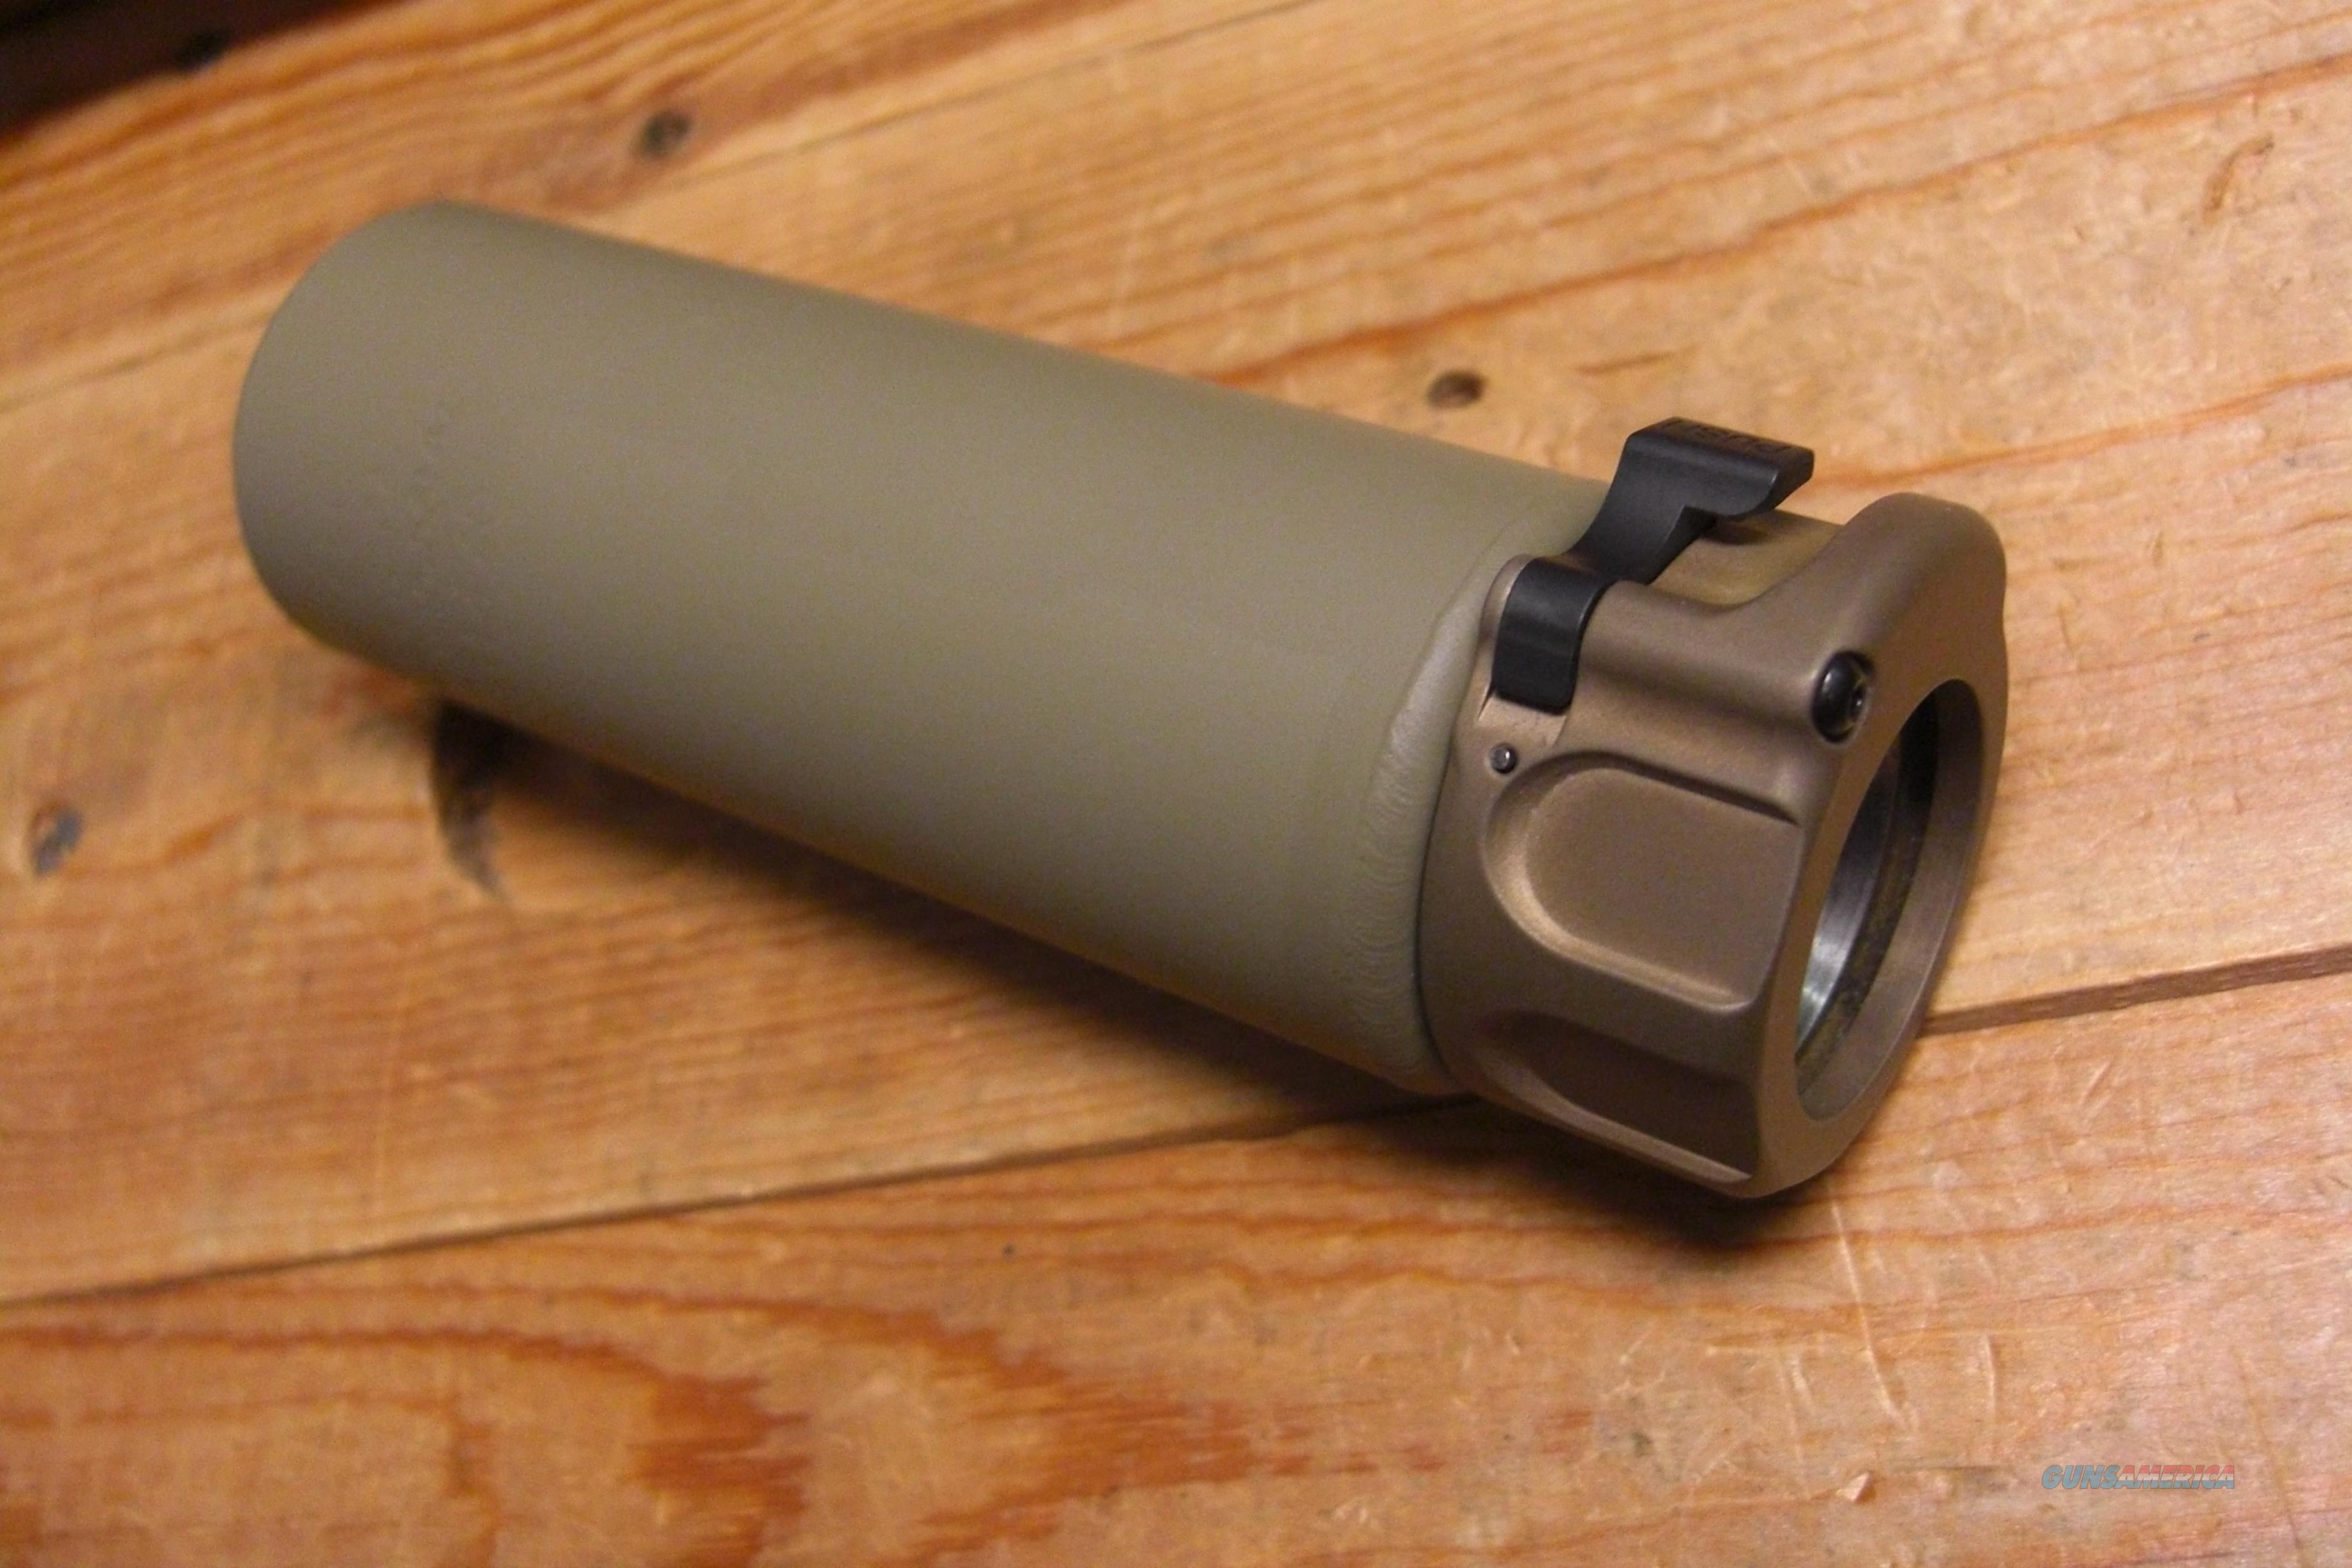 Surefire SOCOM 556-Mini  silencer w/quick detach ring  FDE  Guns > Rifles > Class 3 Rifles > Class 3 Suppressors